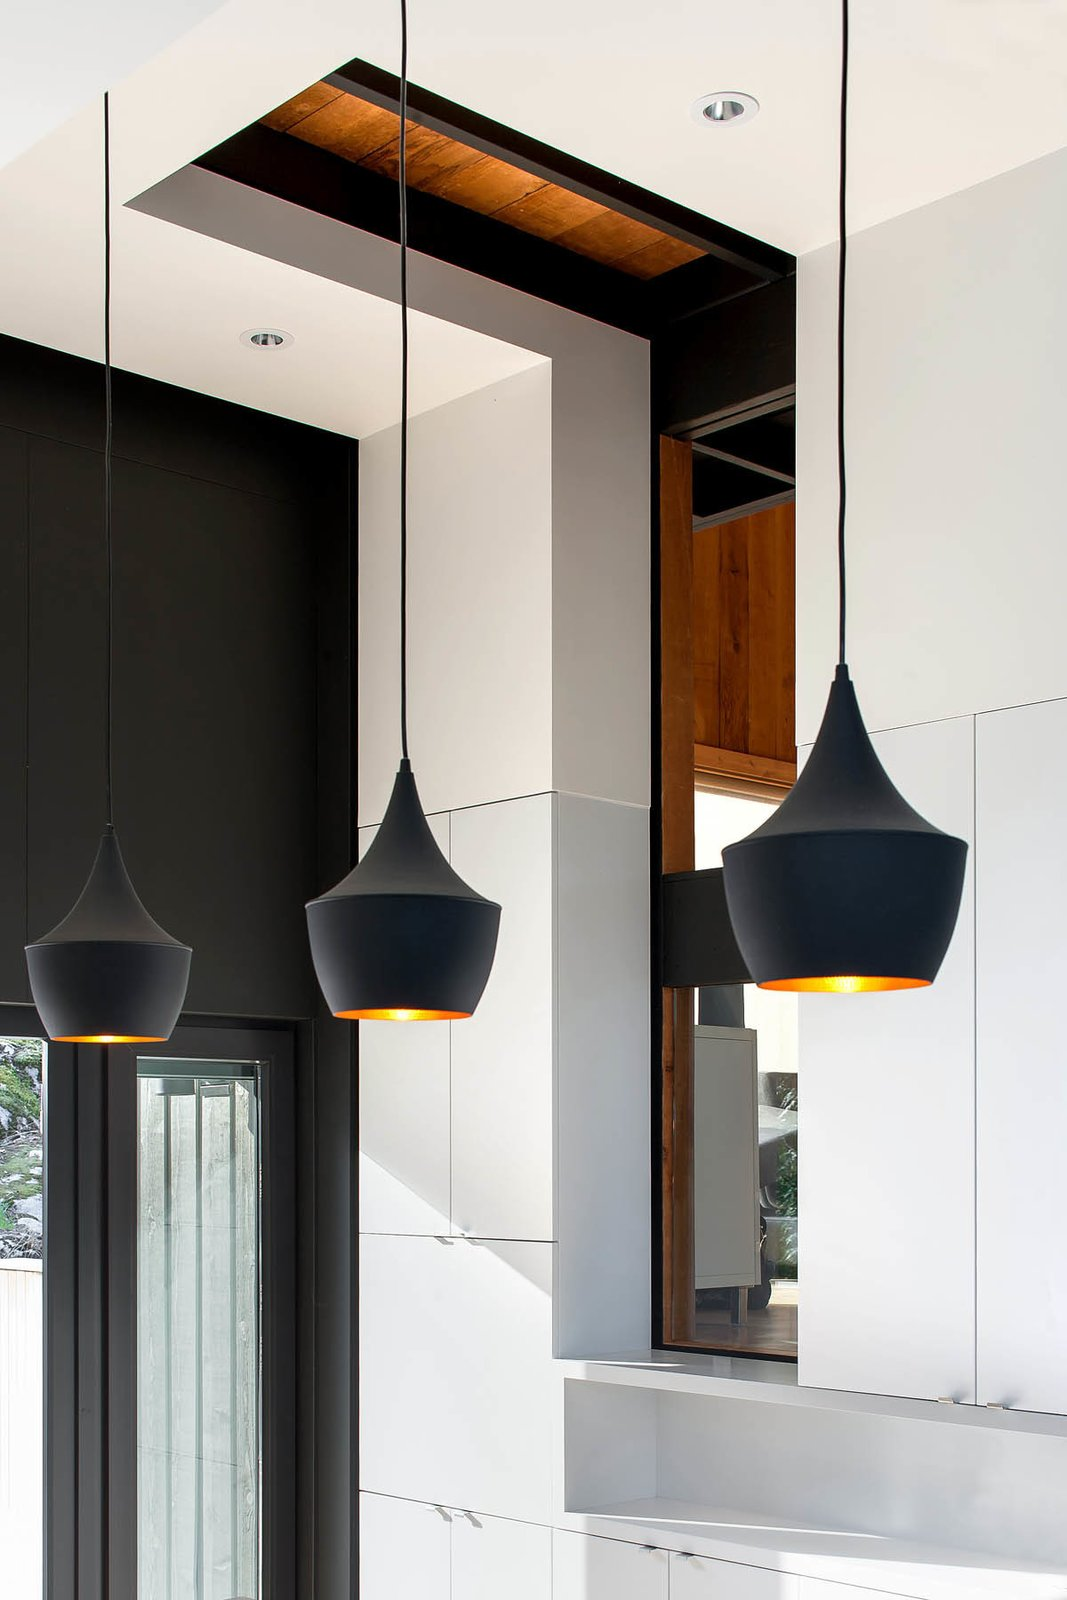 The kitchen faces an elevation, so keeping the space naturally lit was a challenge. The architects specified white surfacing to allow sunlight to bounce off the walls and penetrate the space.  60+ Modern Lighting Solutions by Dwell from A Dramatic Cliffside Kitchen Gets a Sharp and Sculptural Update